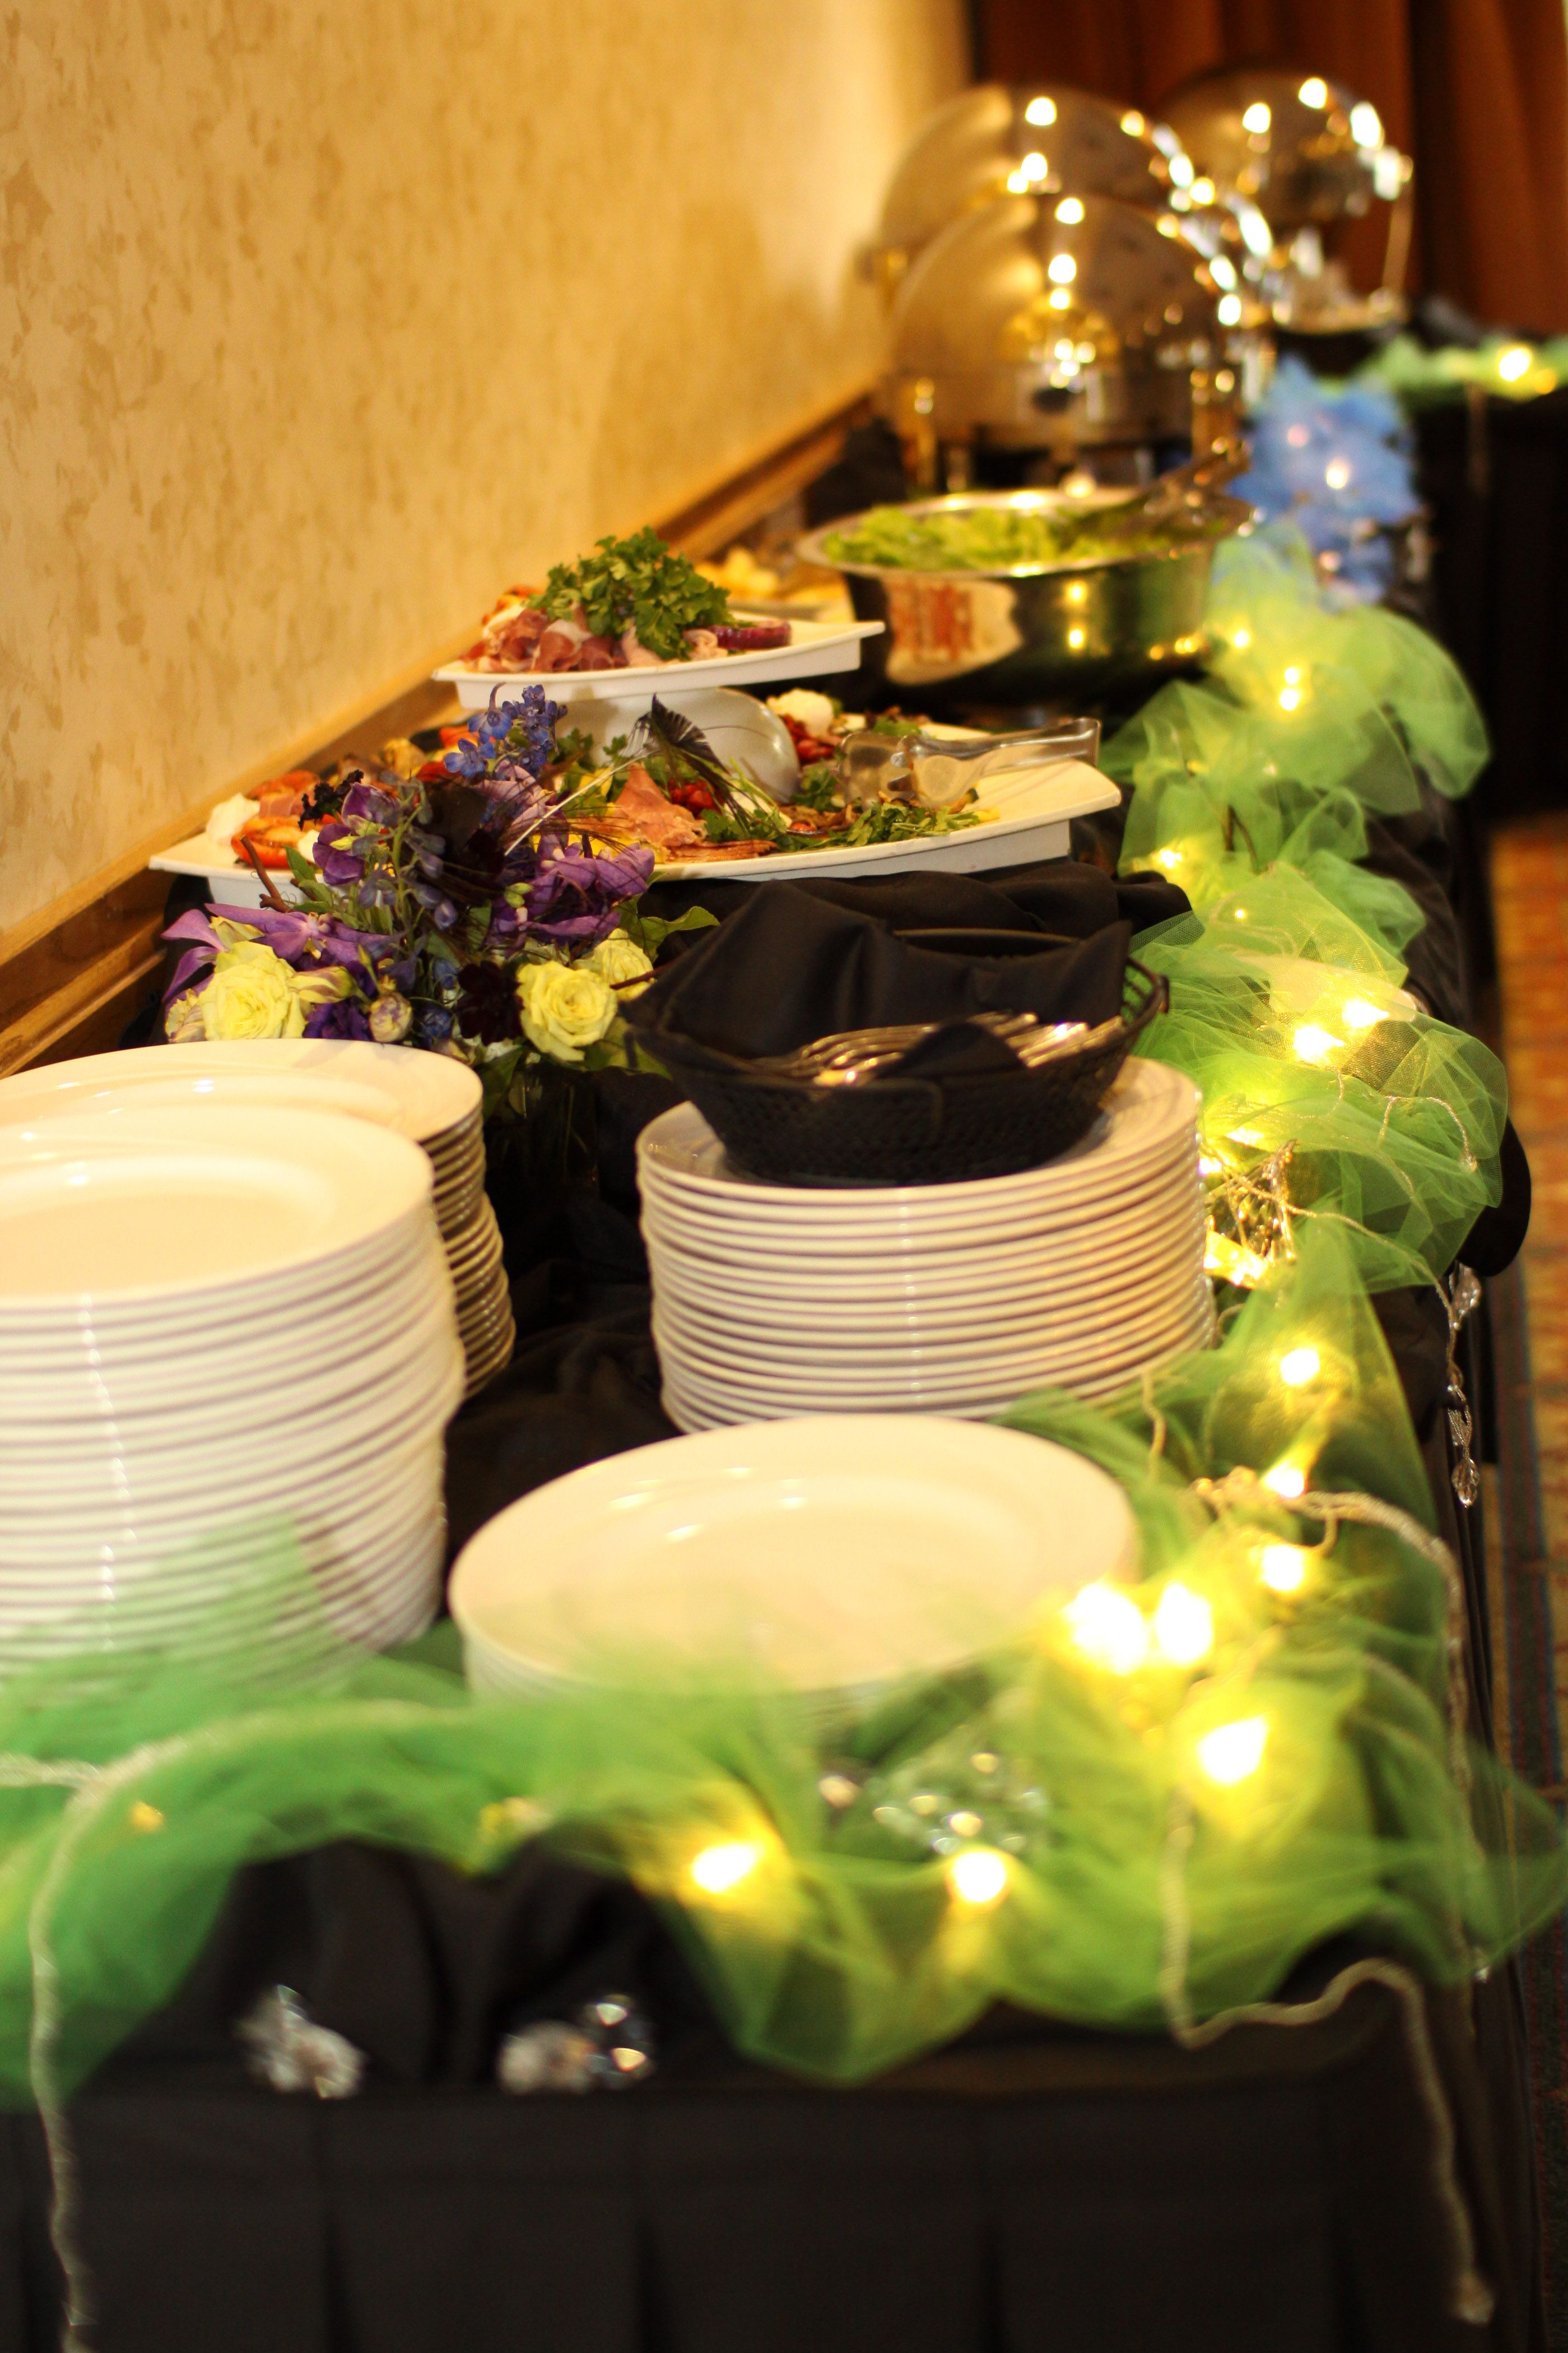 Wedding decorations tulle and lights  decorate buffet table w tulle u Christmas lights  Baby shower